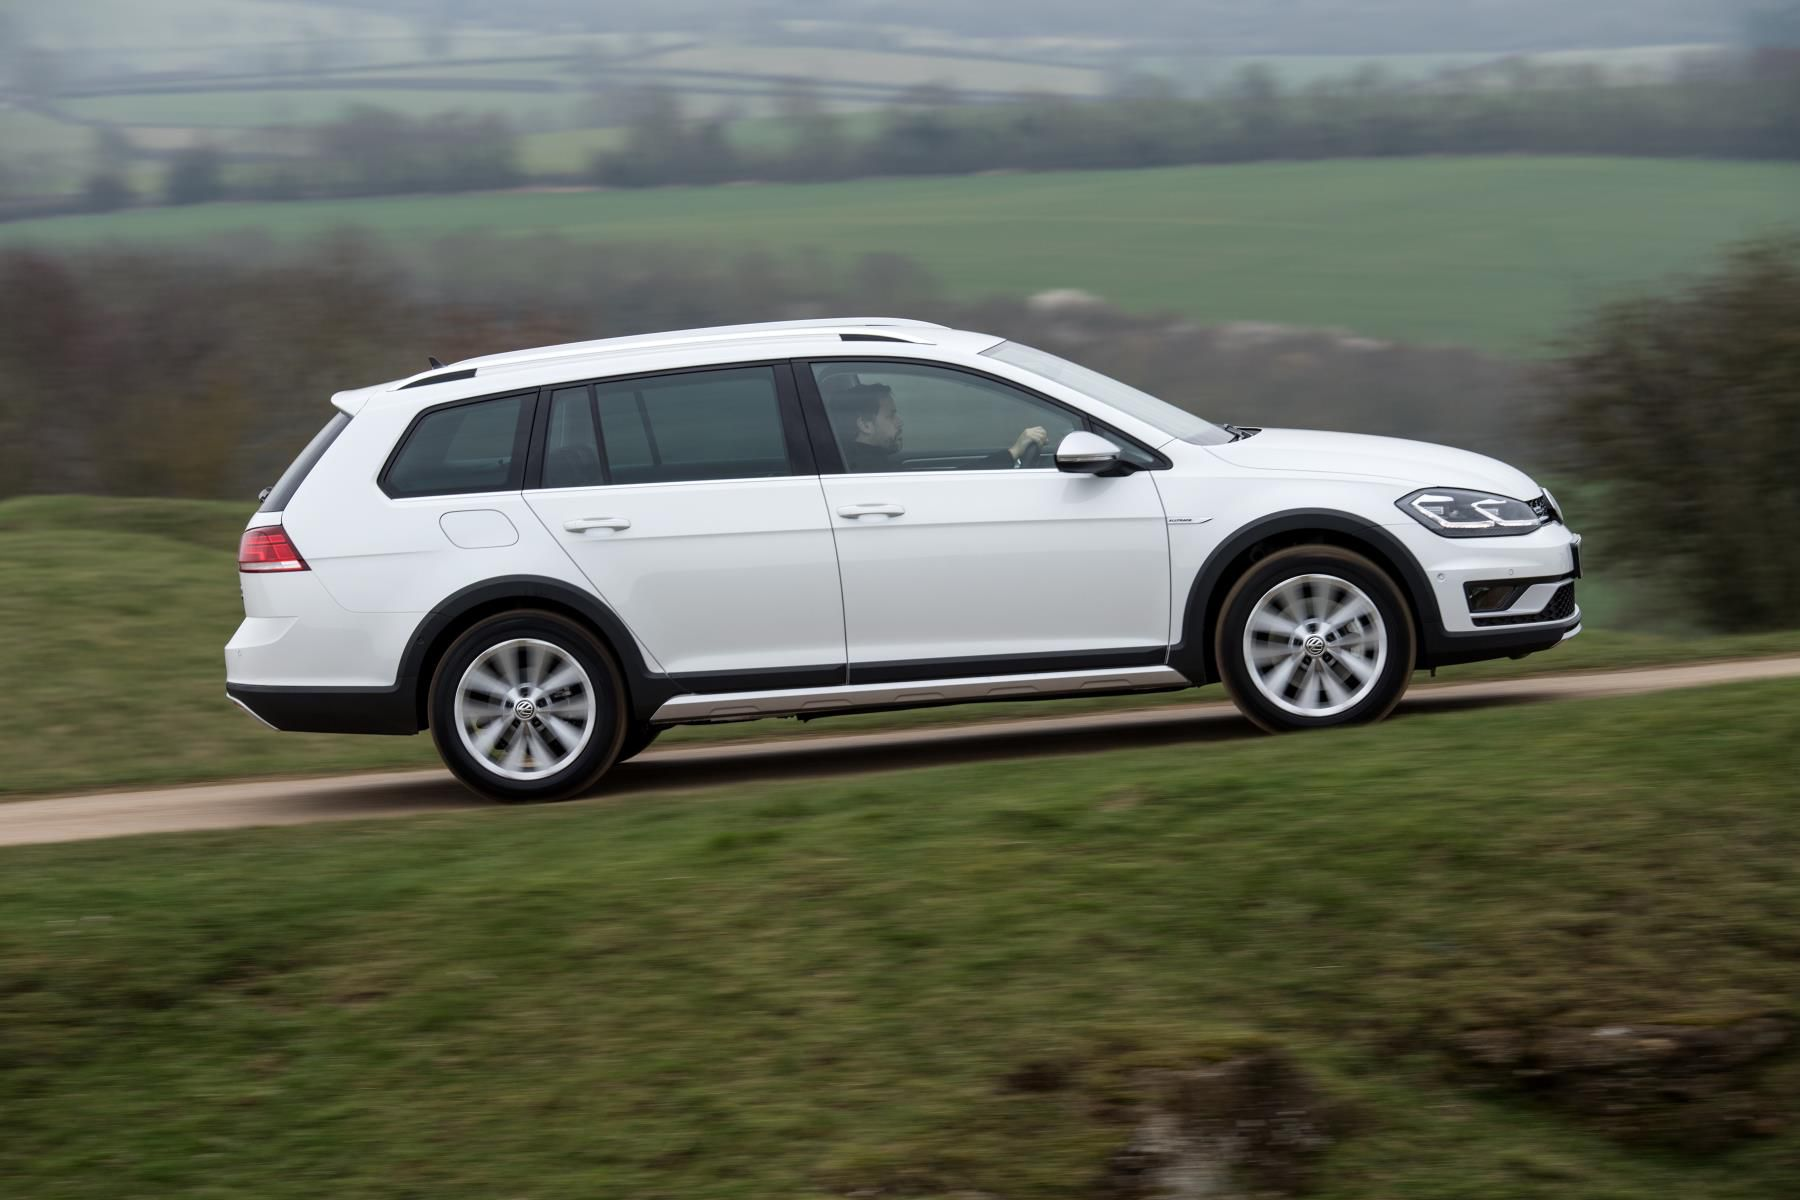 Volkswagen Golf Alltrack climbing a hill in the countryside